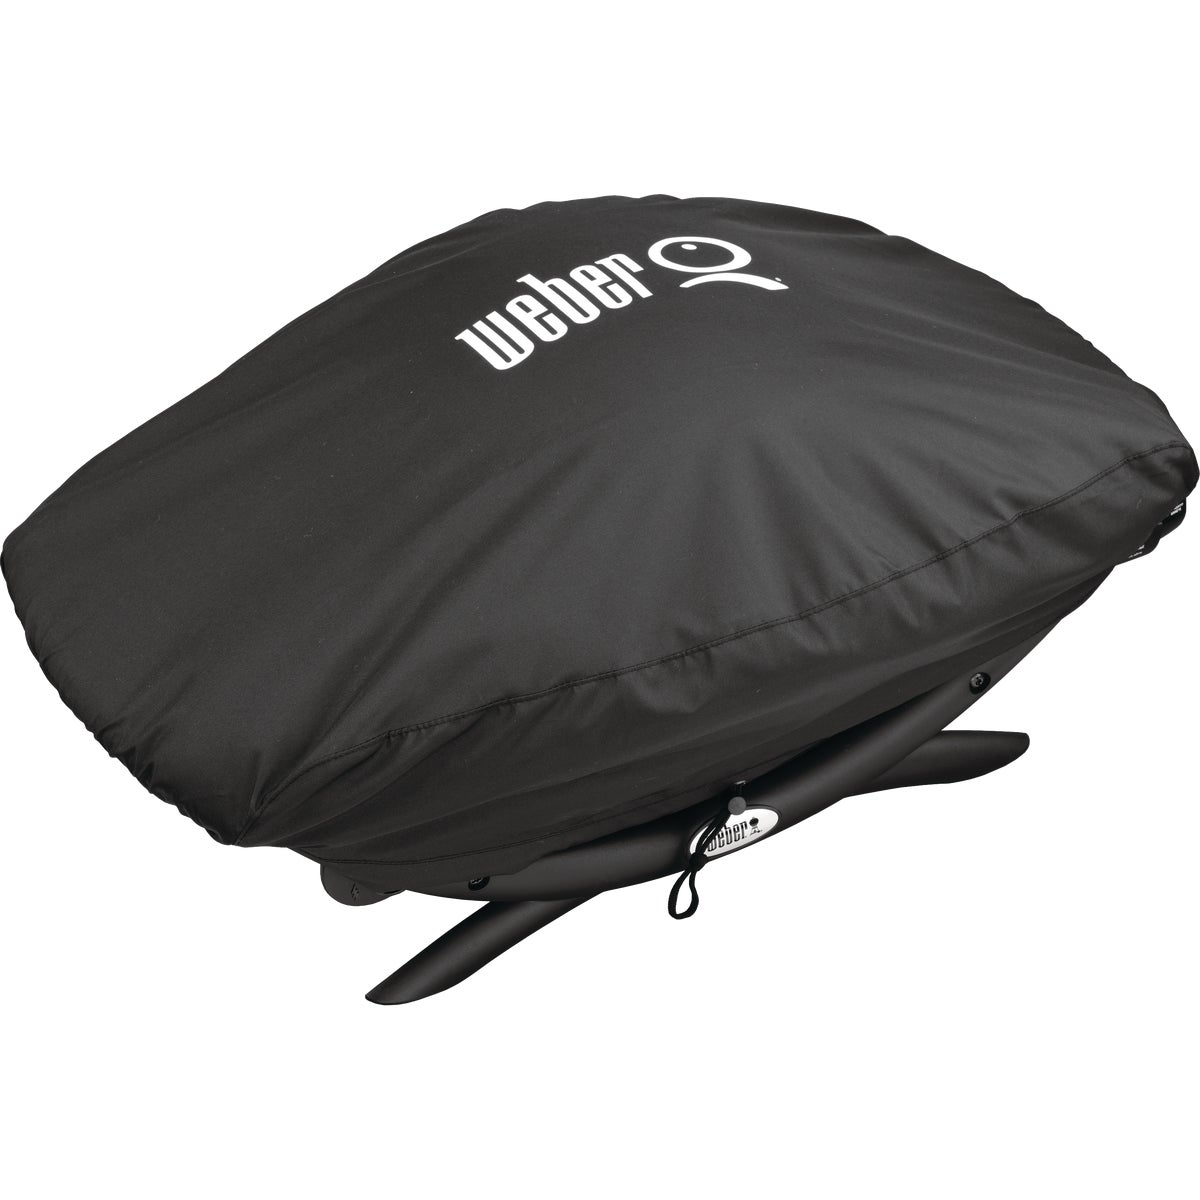 WEBER Q GRILL COVER - 6551 by Weber